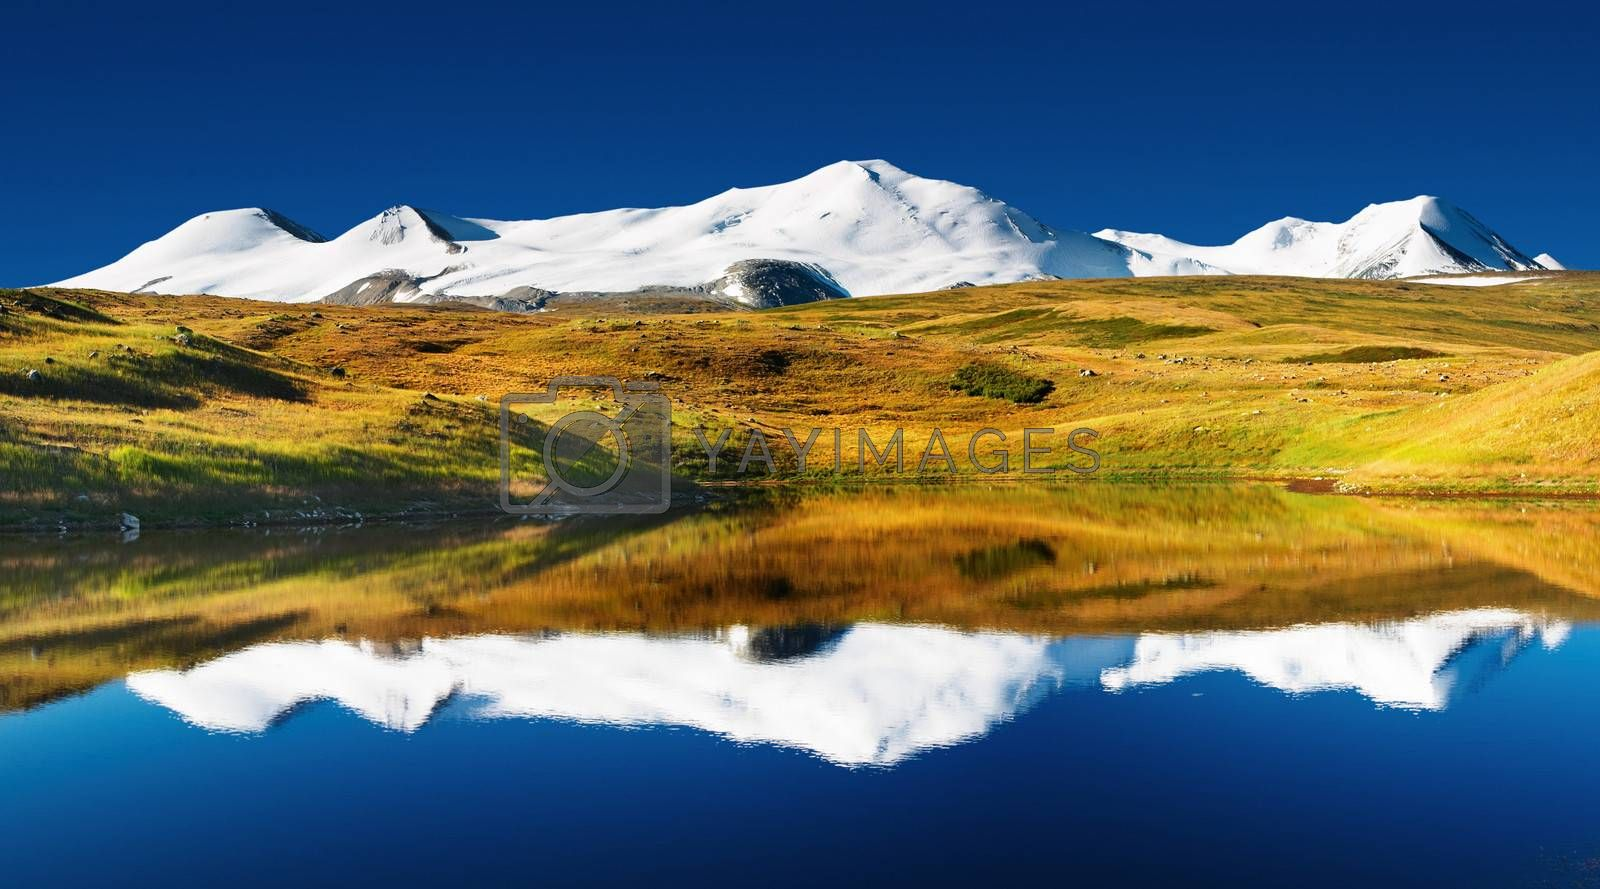 Landscape with lake and snowy mountains